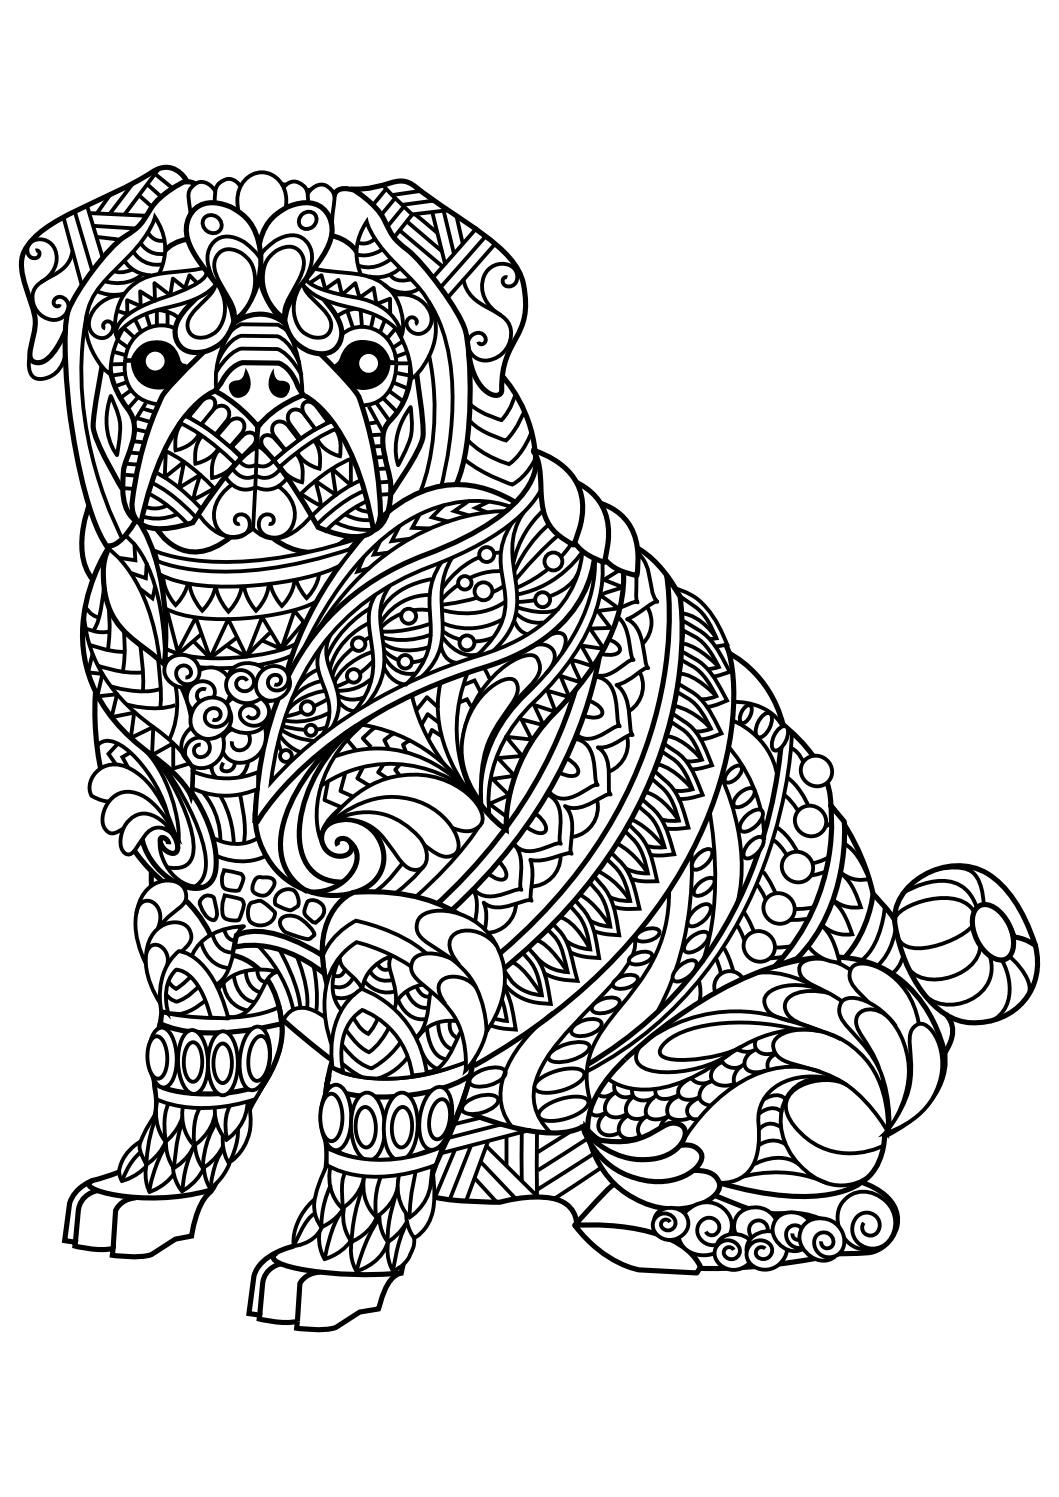 Printable Coloring Pages Of Wolves  Download 8f - Save it to your computer